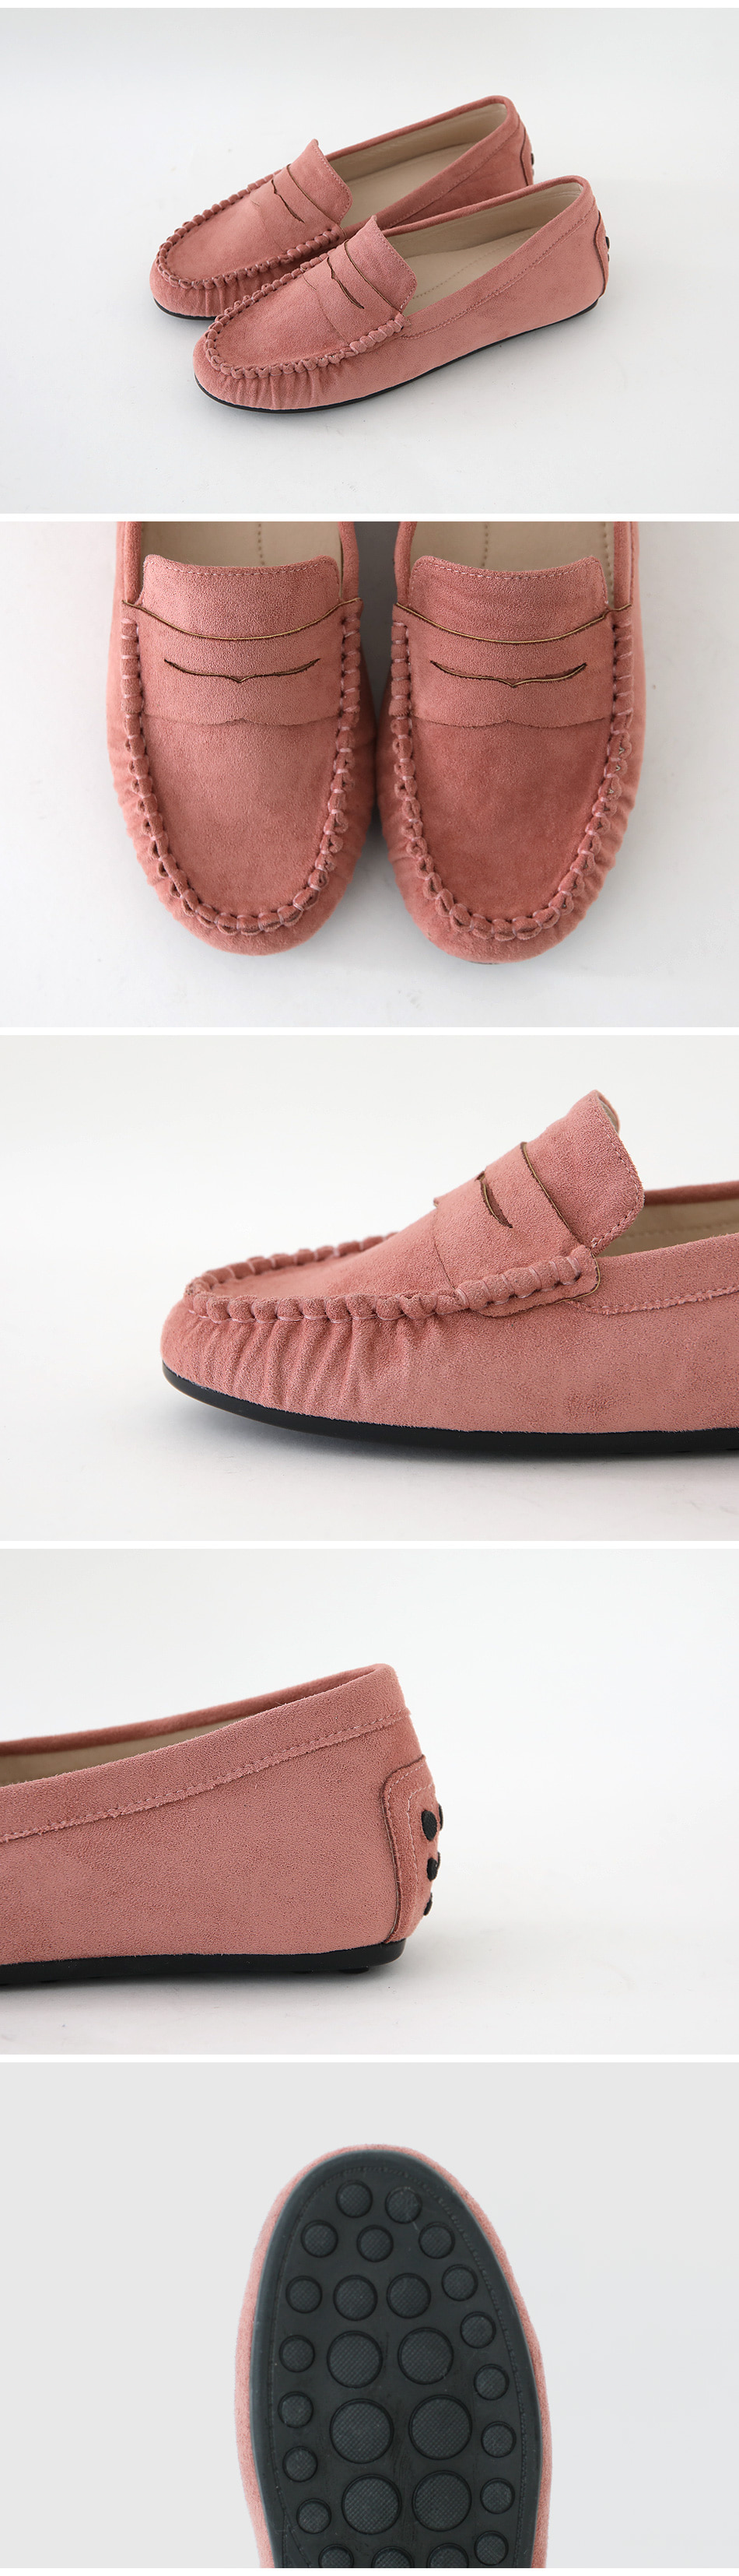 Willow tall loafers 3 cm